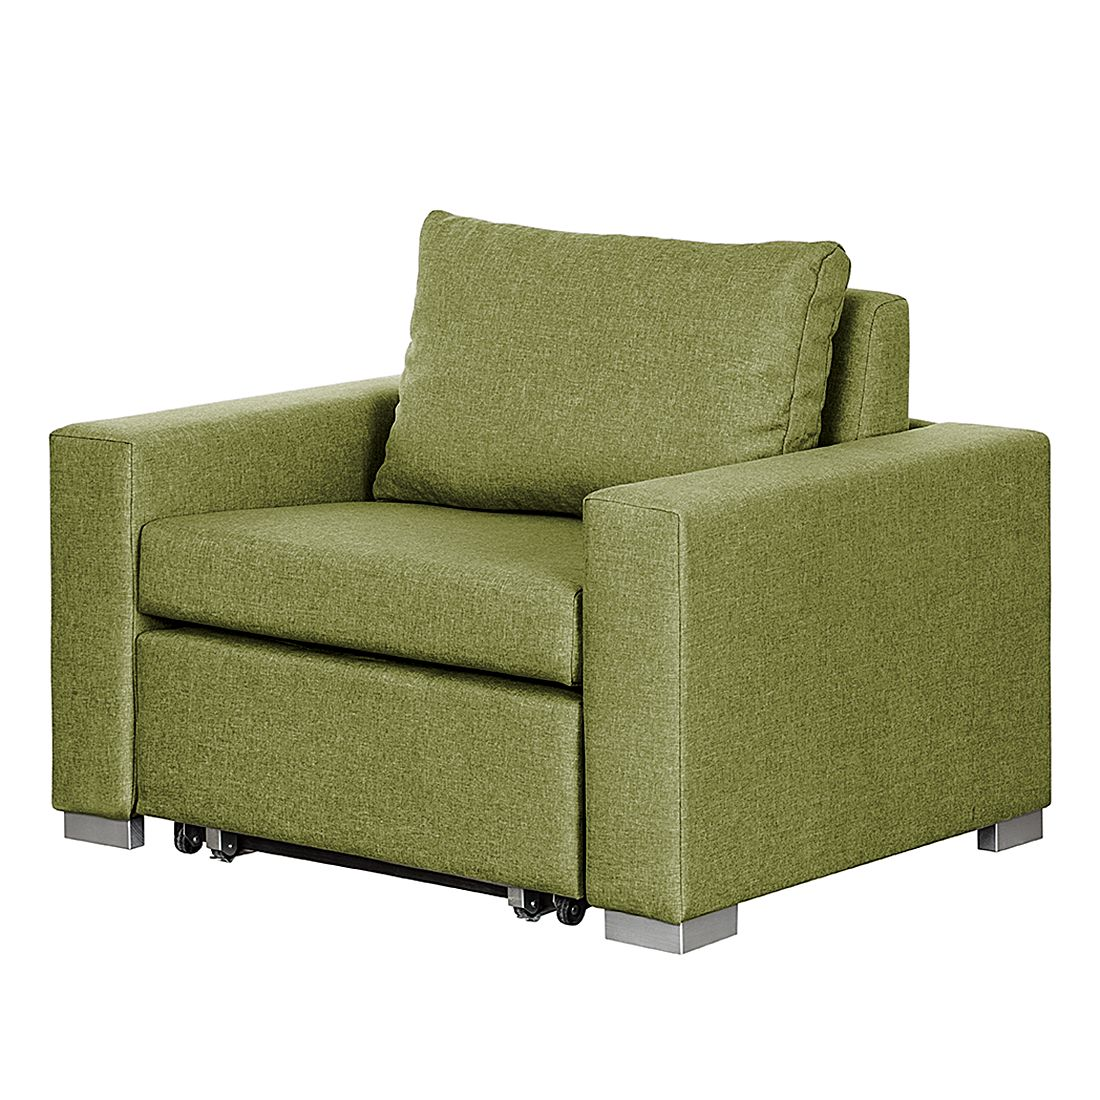 Fauteuil convertible Latina IV - Textile - Vert, mooved